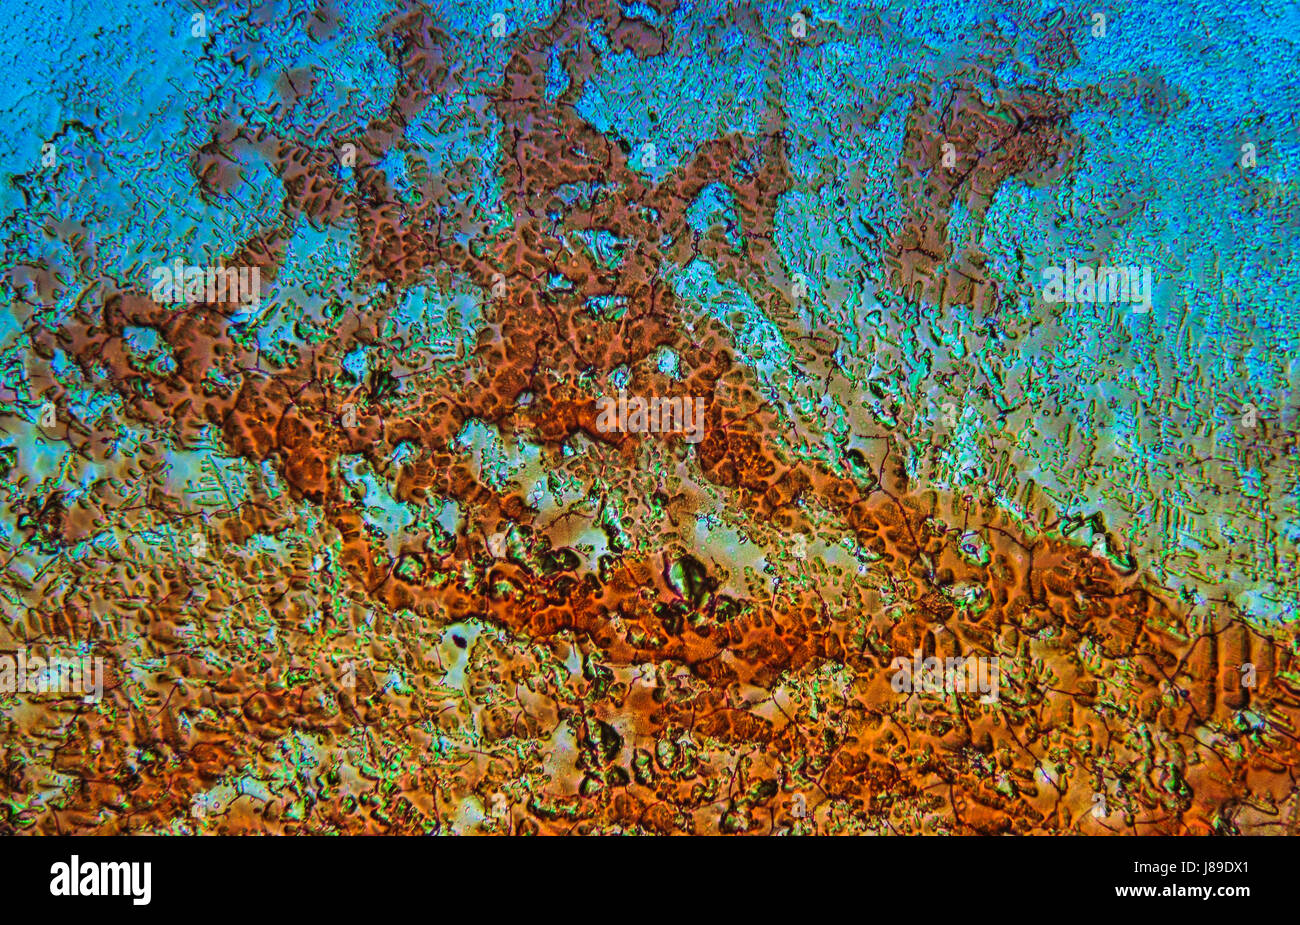 Mineral structure under microscope. Microscopical inorganic texture, background. - Stock Image